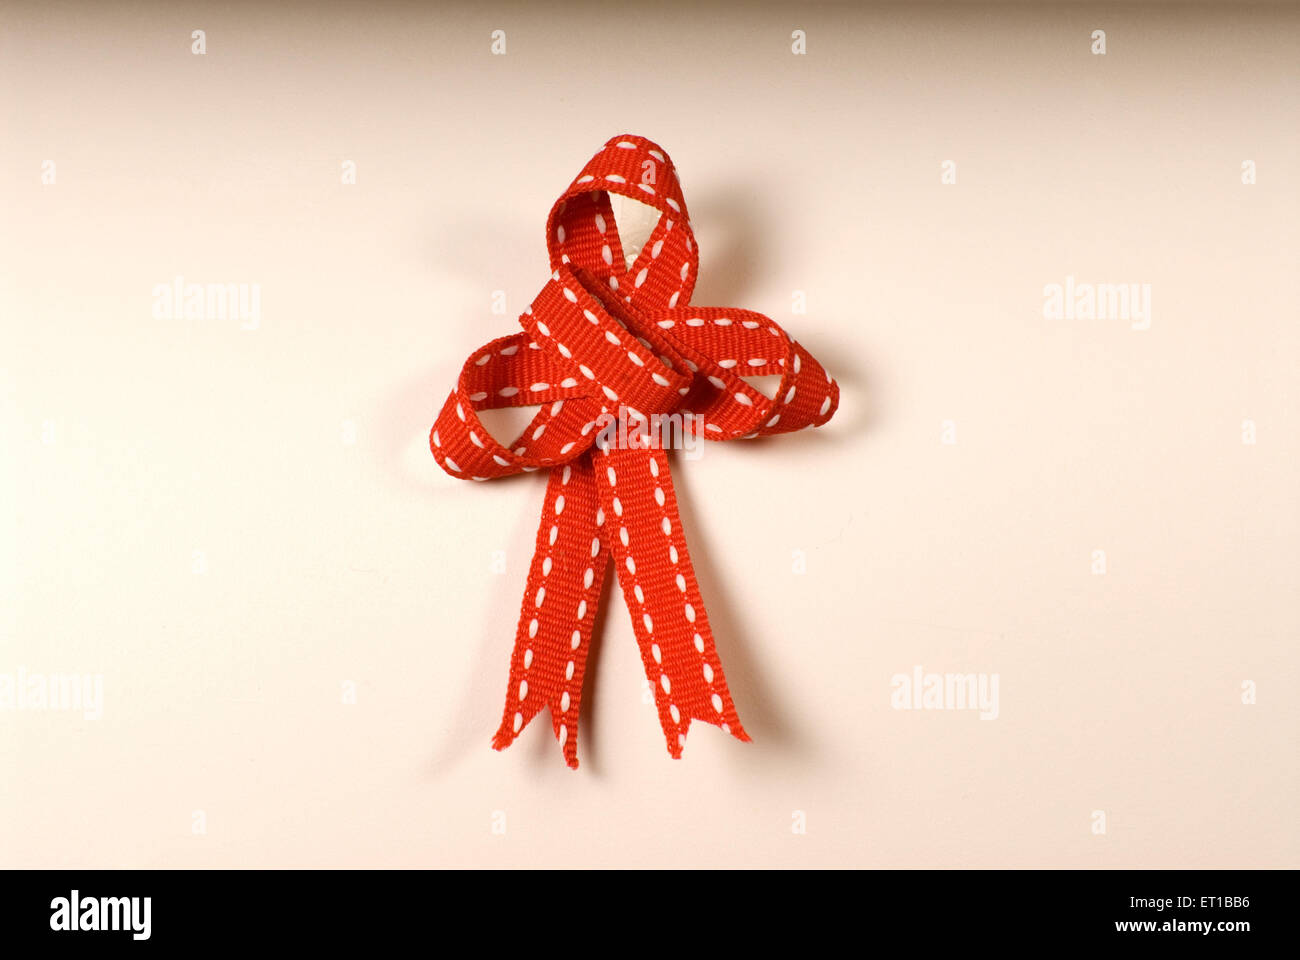 Ribbon knot on white background - Stock Image